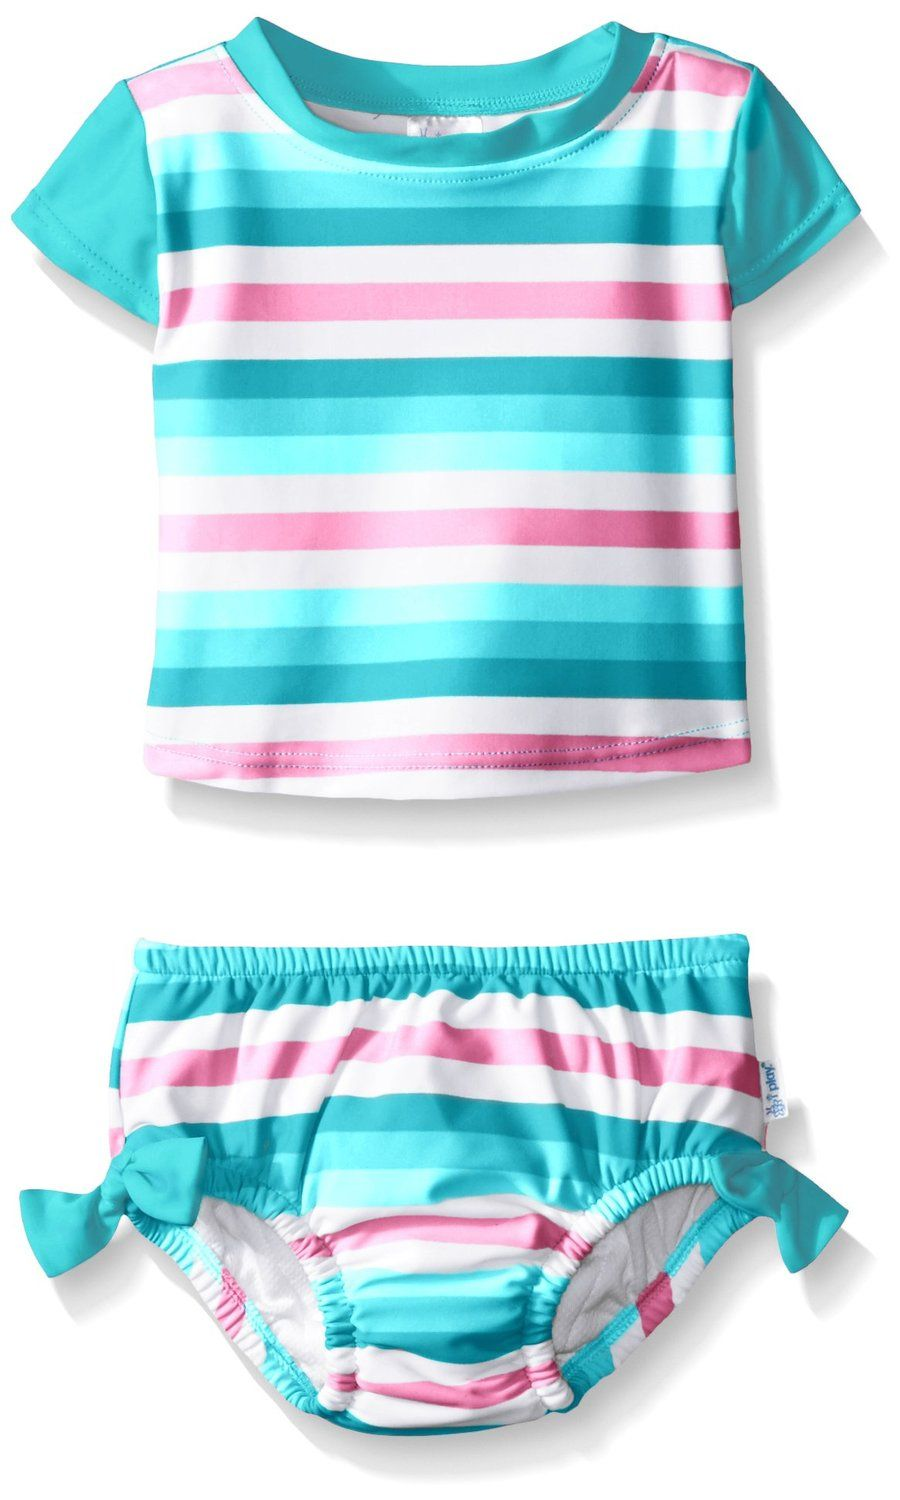 46575dde2f13b i play. Baby and Toddler Girls' Swimsuit Set with Built-In Absorbent Swim  Diaper ** Special product just for you. See it now! : Baby clothes